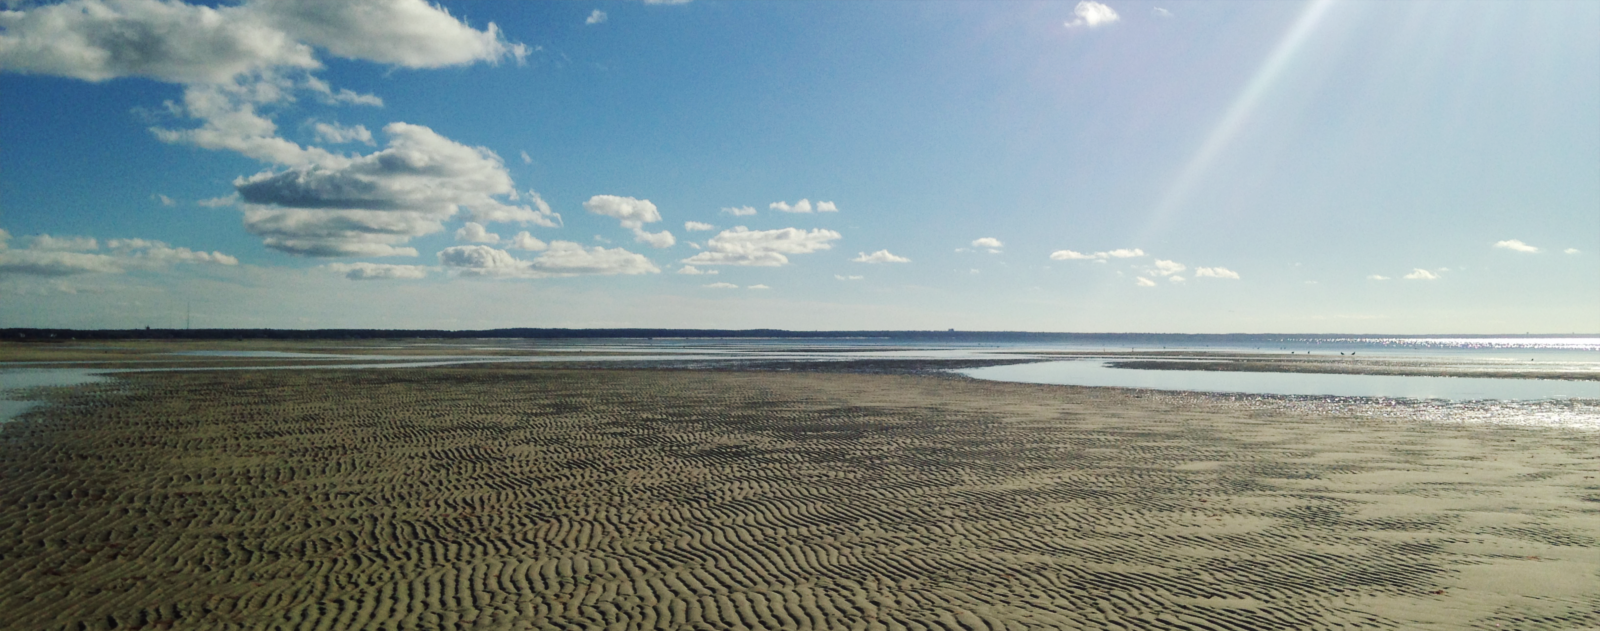 Sun, clouds and sand on Cape Cod Bay